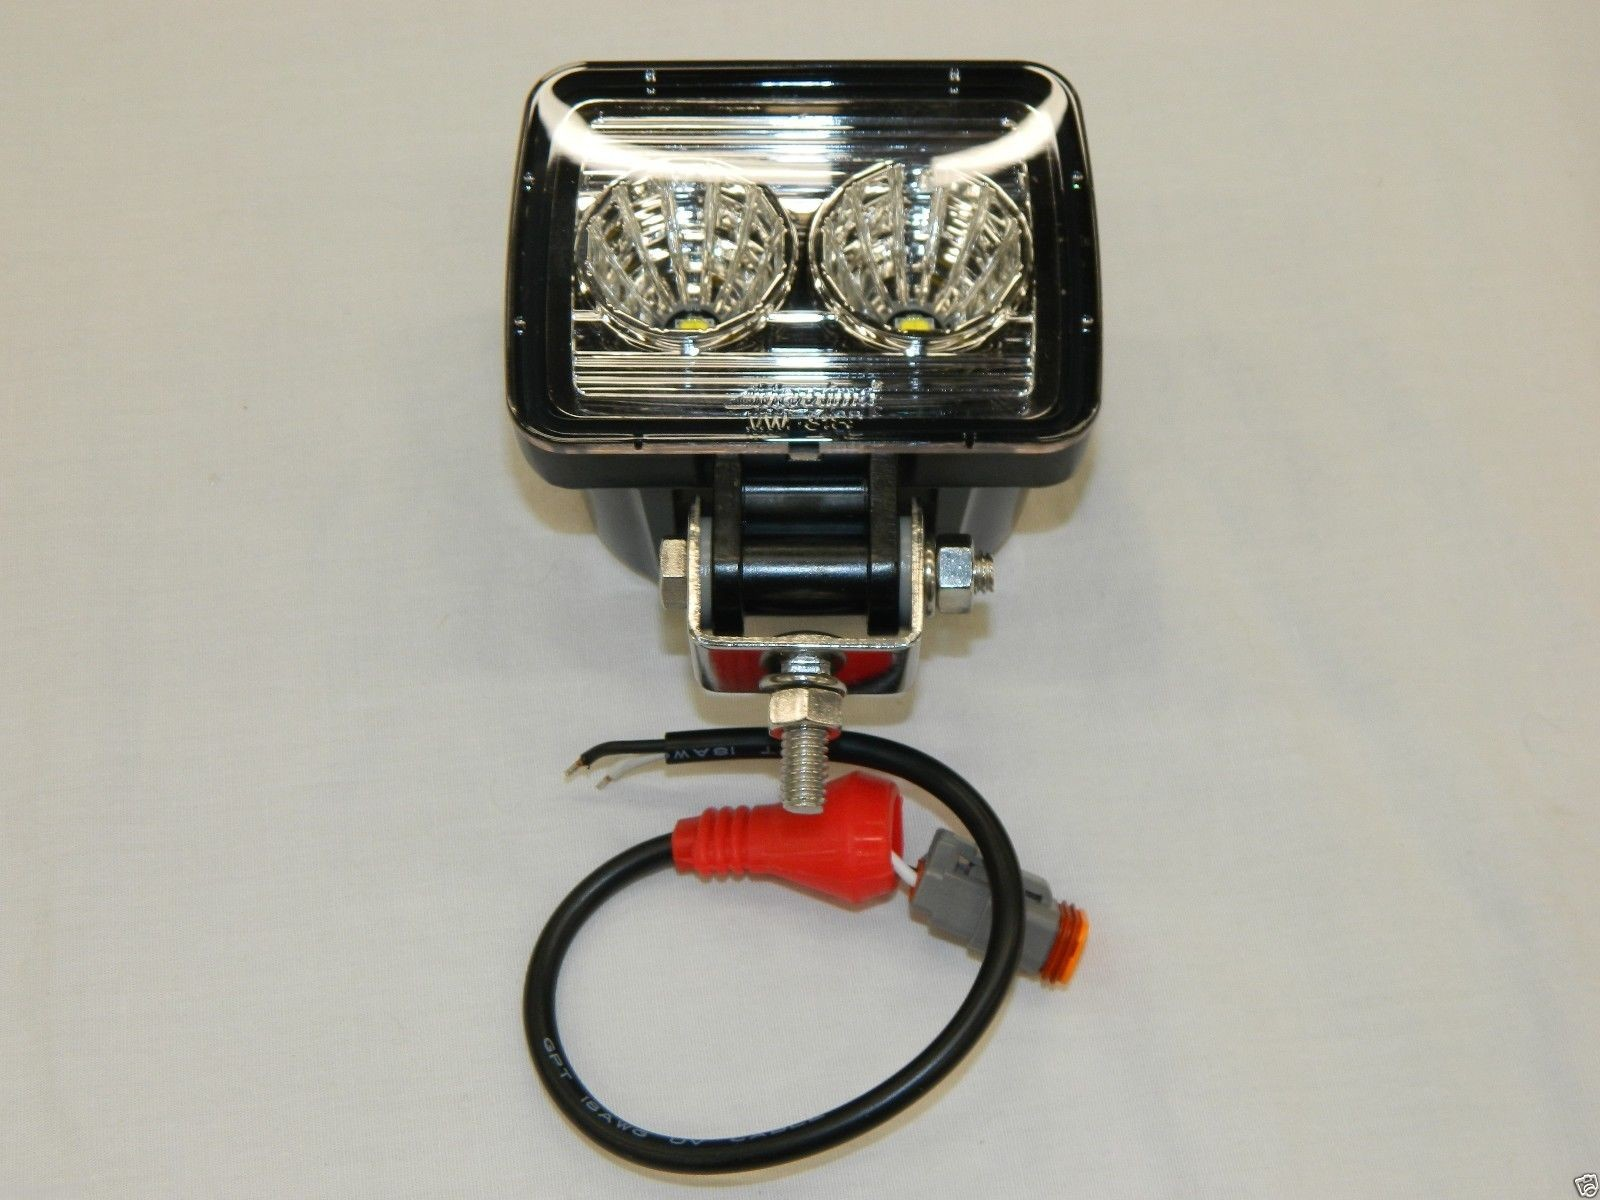 Maxxima MWL 31SP Heavy Duty Square pact Work Light 1350 Lumen 2 LED s